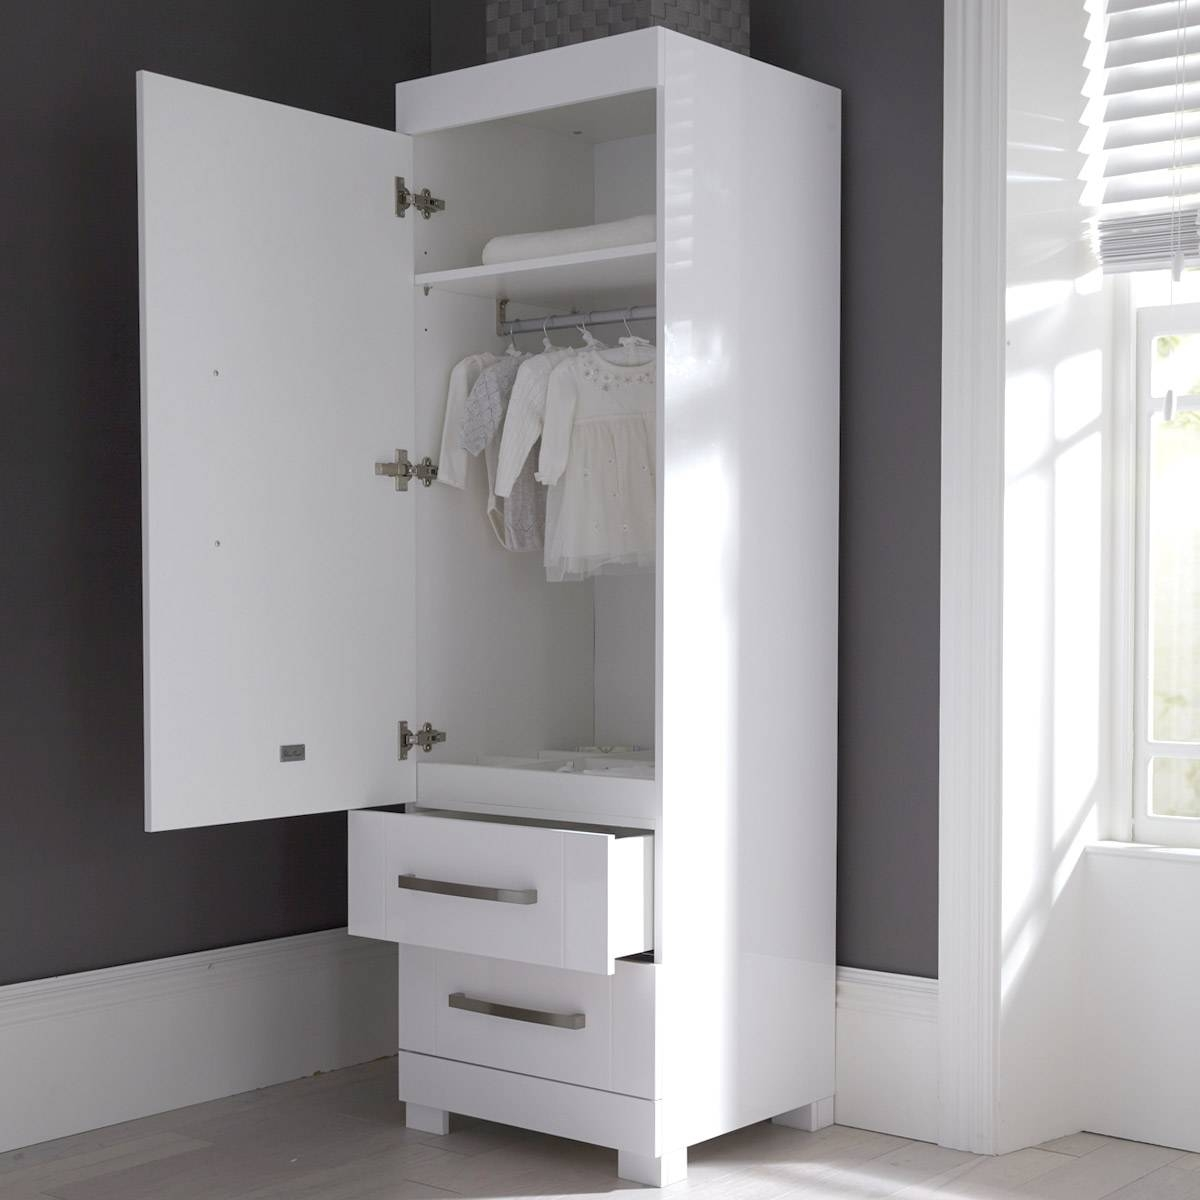 Notting Hill Nursery Single Wardrobe | Silver Cross Uk throughout Silver Wardrobes (Image 9 of 15)